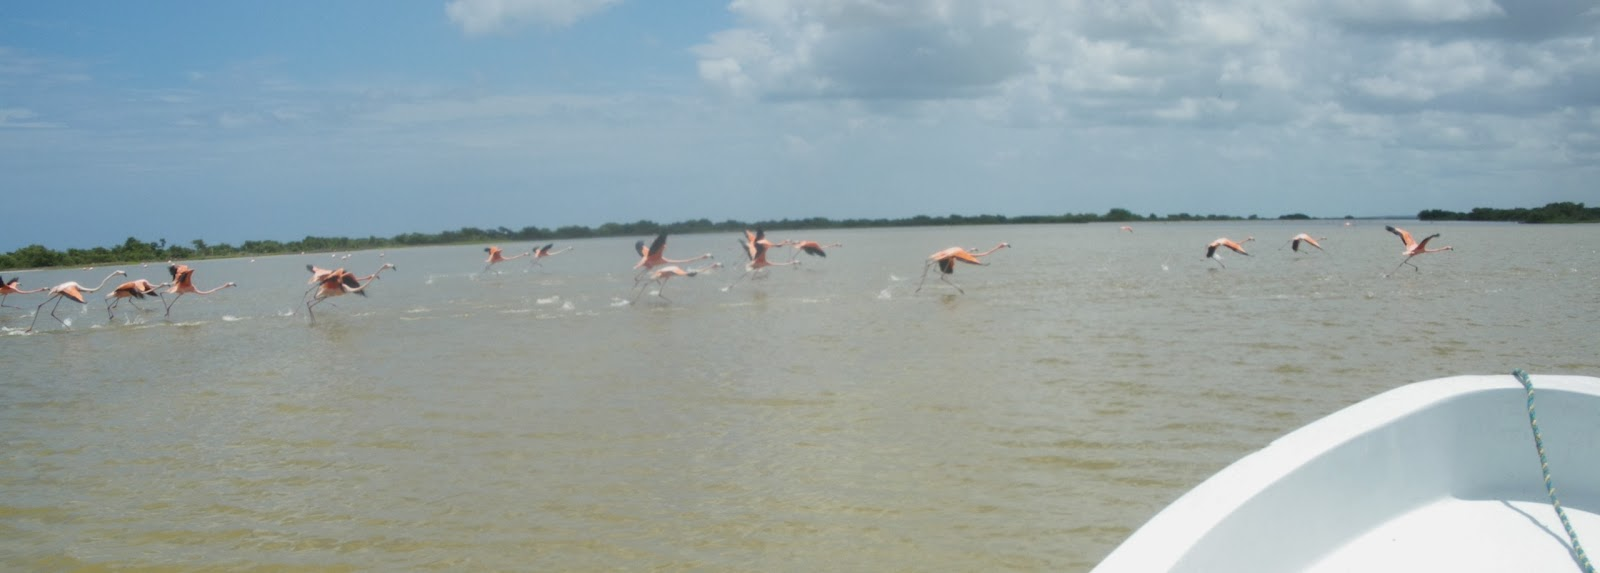 mexico rio lagartos yucatan excursion flamencos